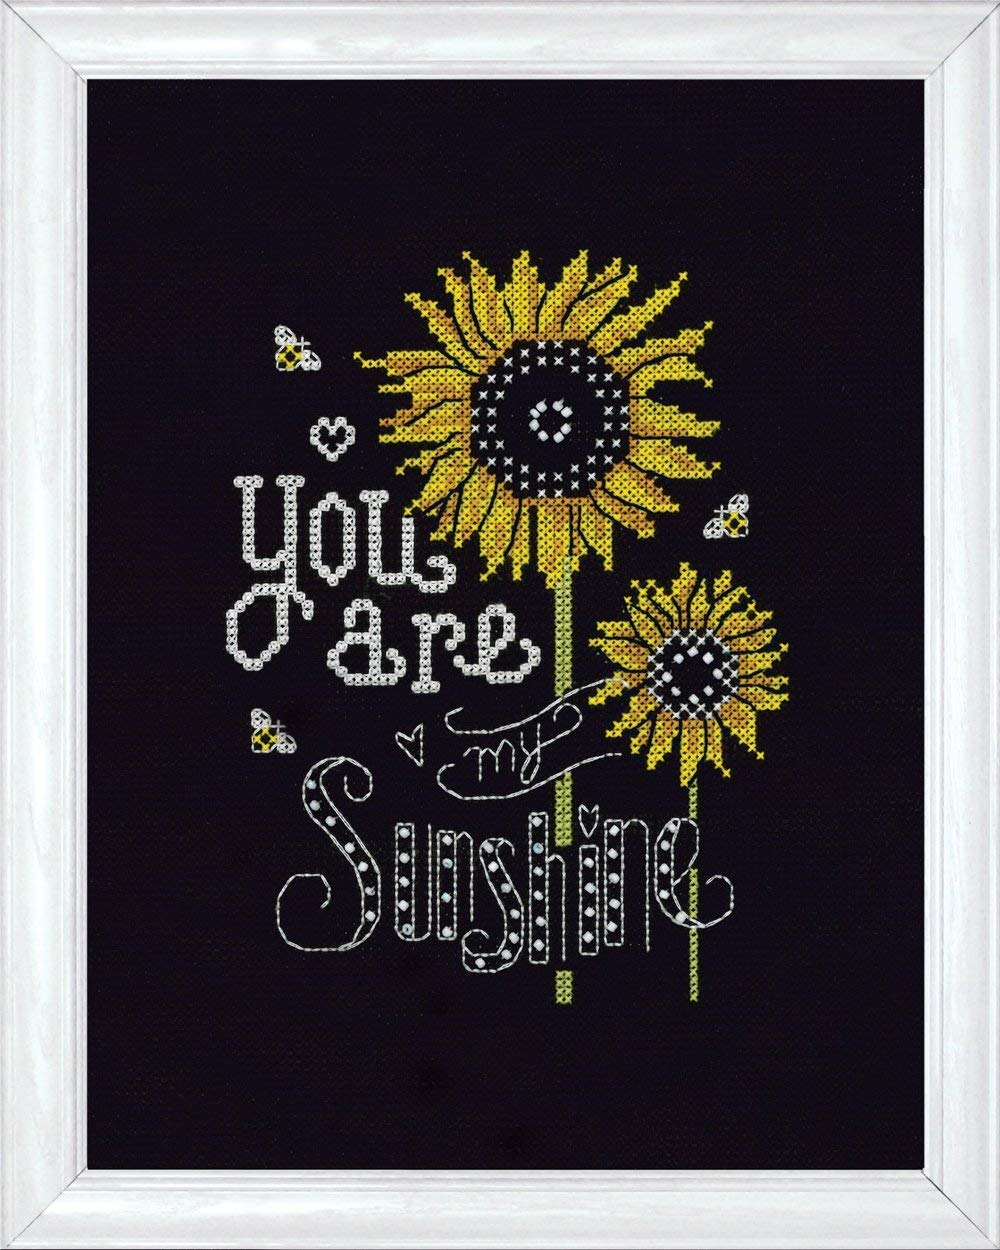 Design Works Crafts 2889 Sunshine Chalkboard Counted Cross Stitch Kit, 8 by 10 8 by 10 Inc.